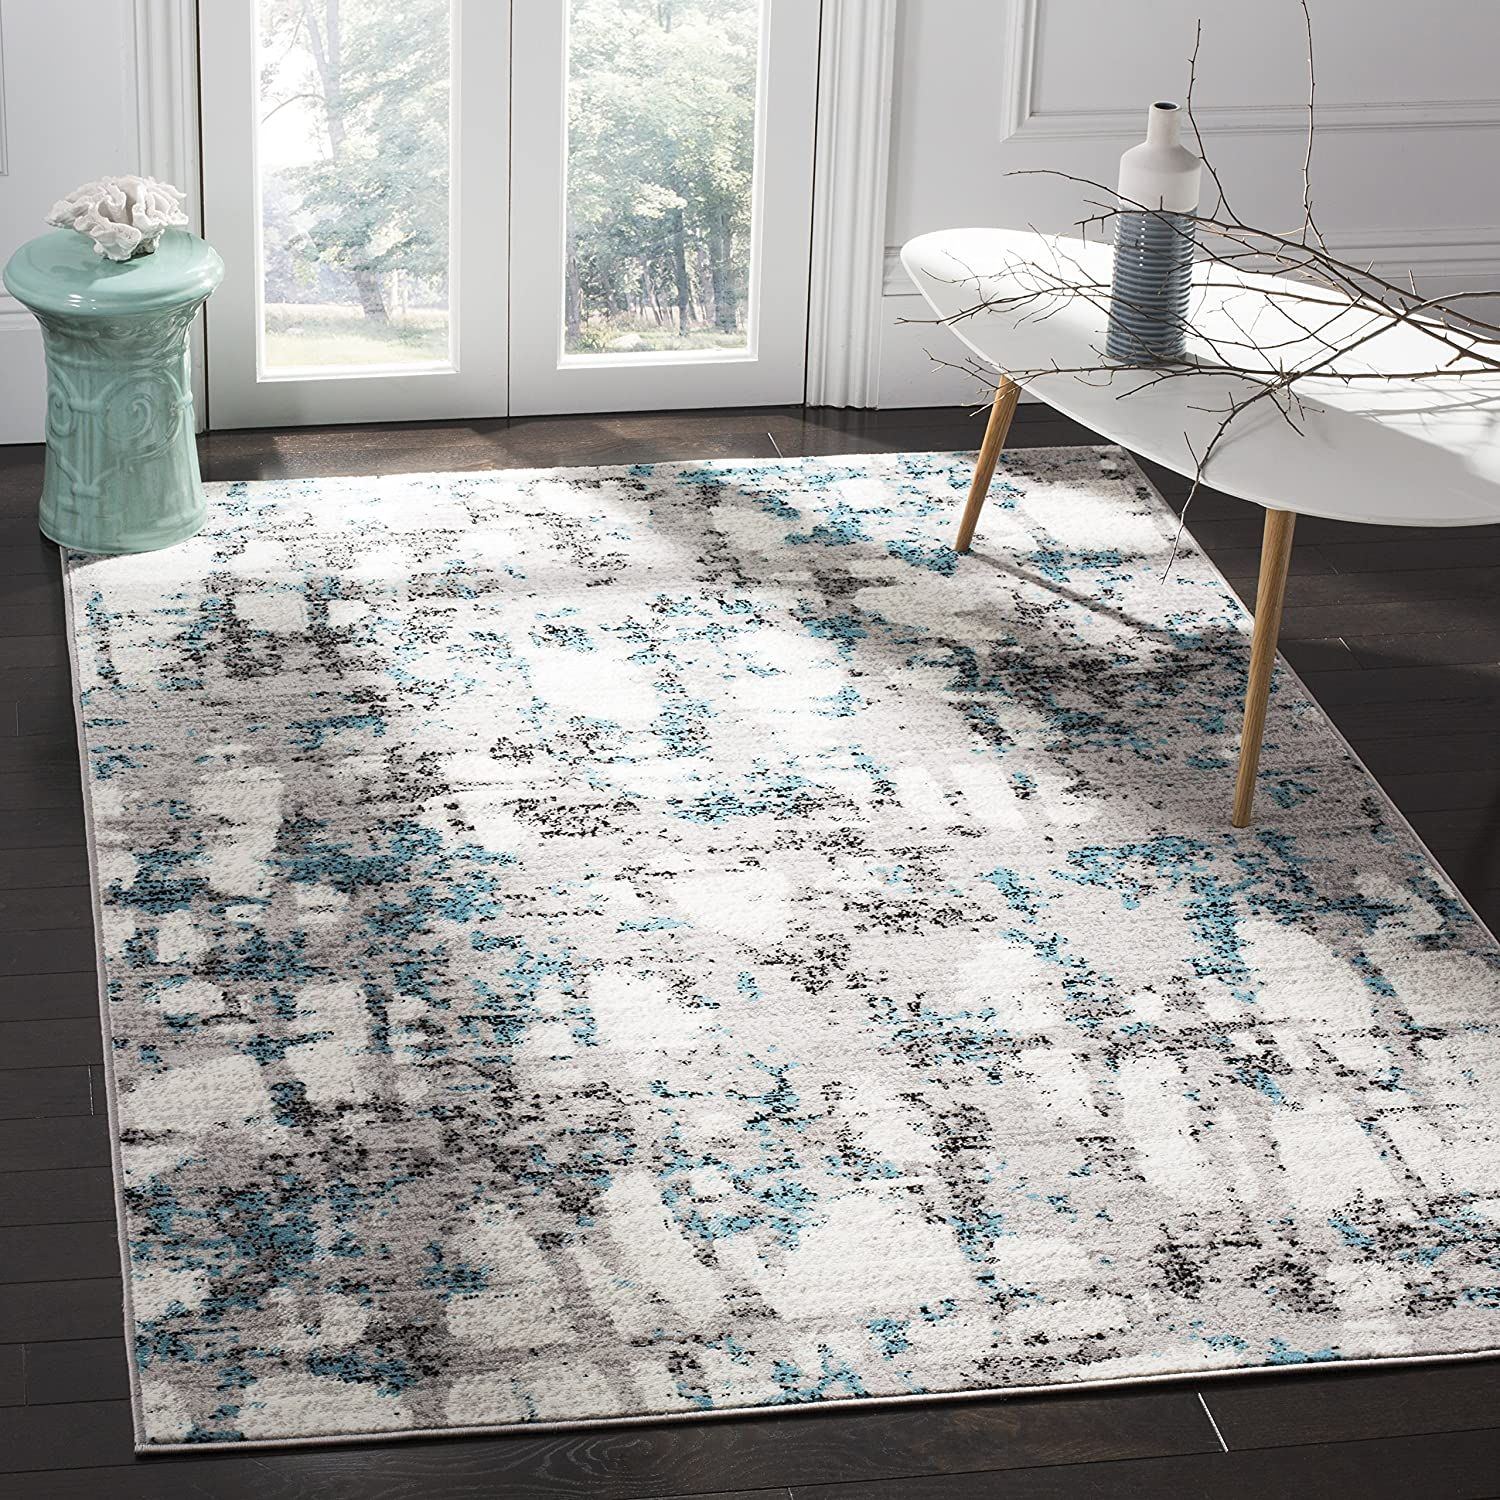 Safavieh Max 86% OFF Skyler Collection Clearance SALE! Limited time! SKY193B Non-Shedding Modern Abstract